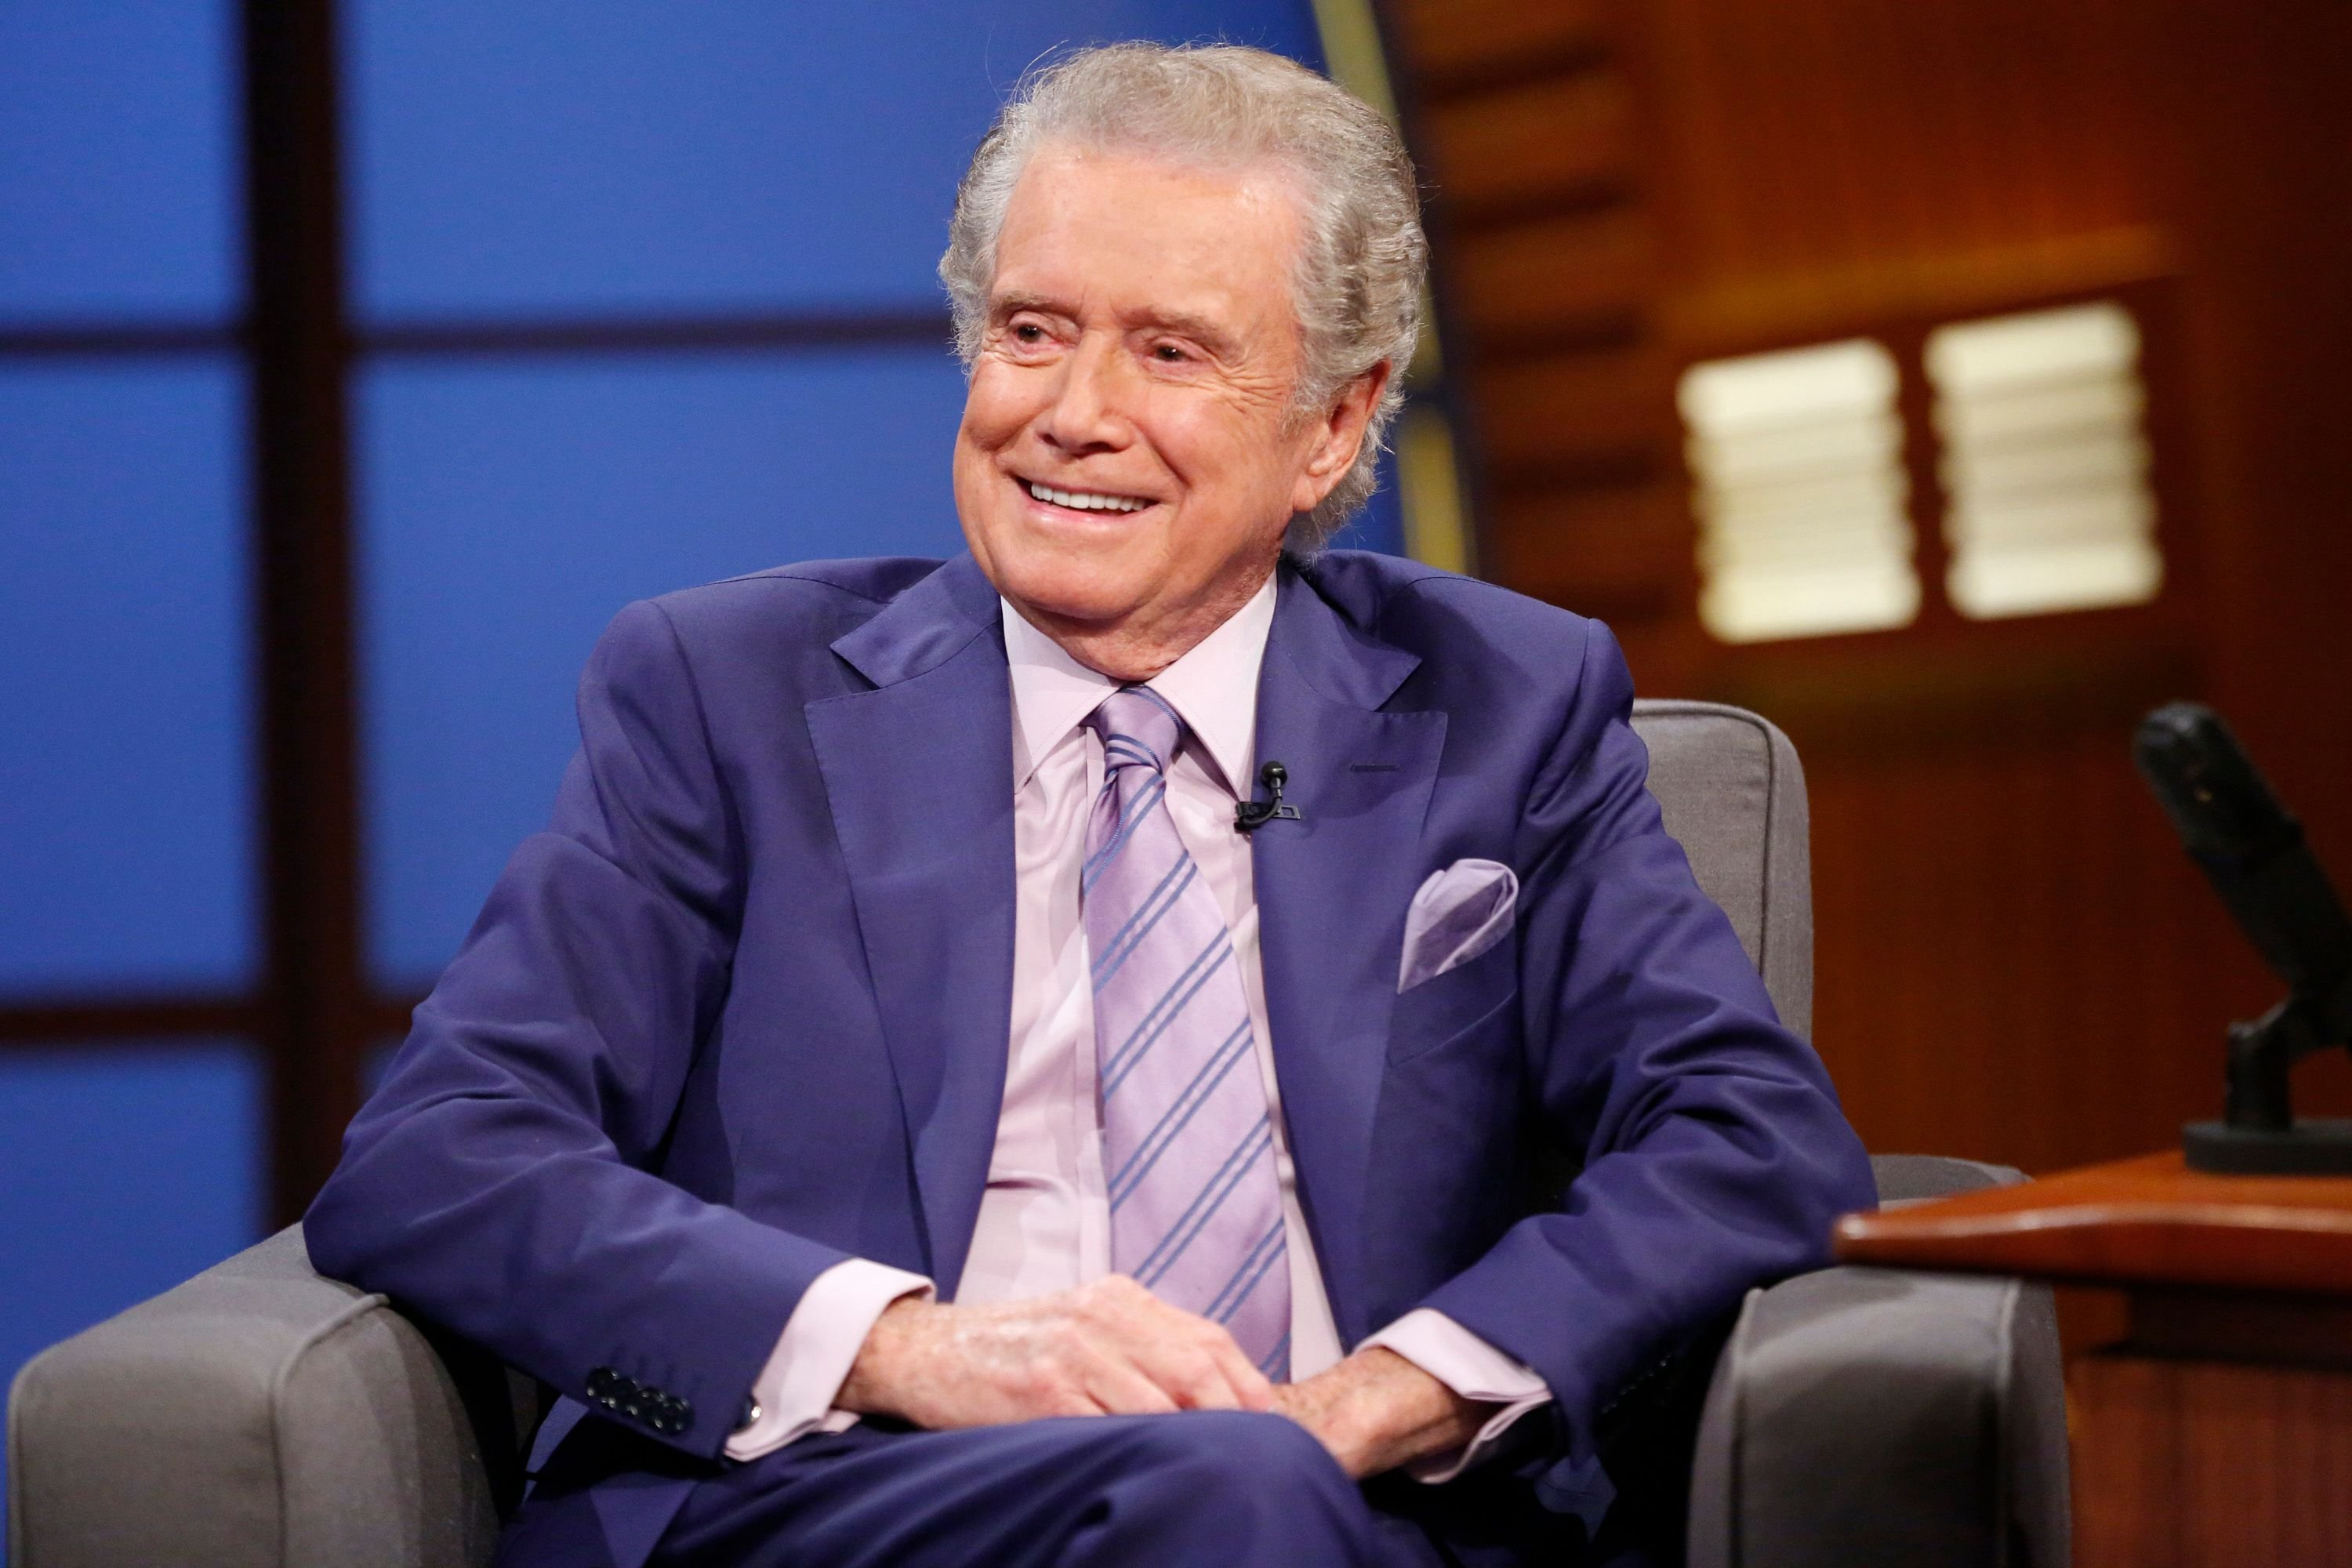 """Regis Philbin during an interview on """"Late Night with Seth Meyers"""" on July 16, 2014 